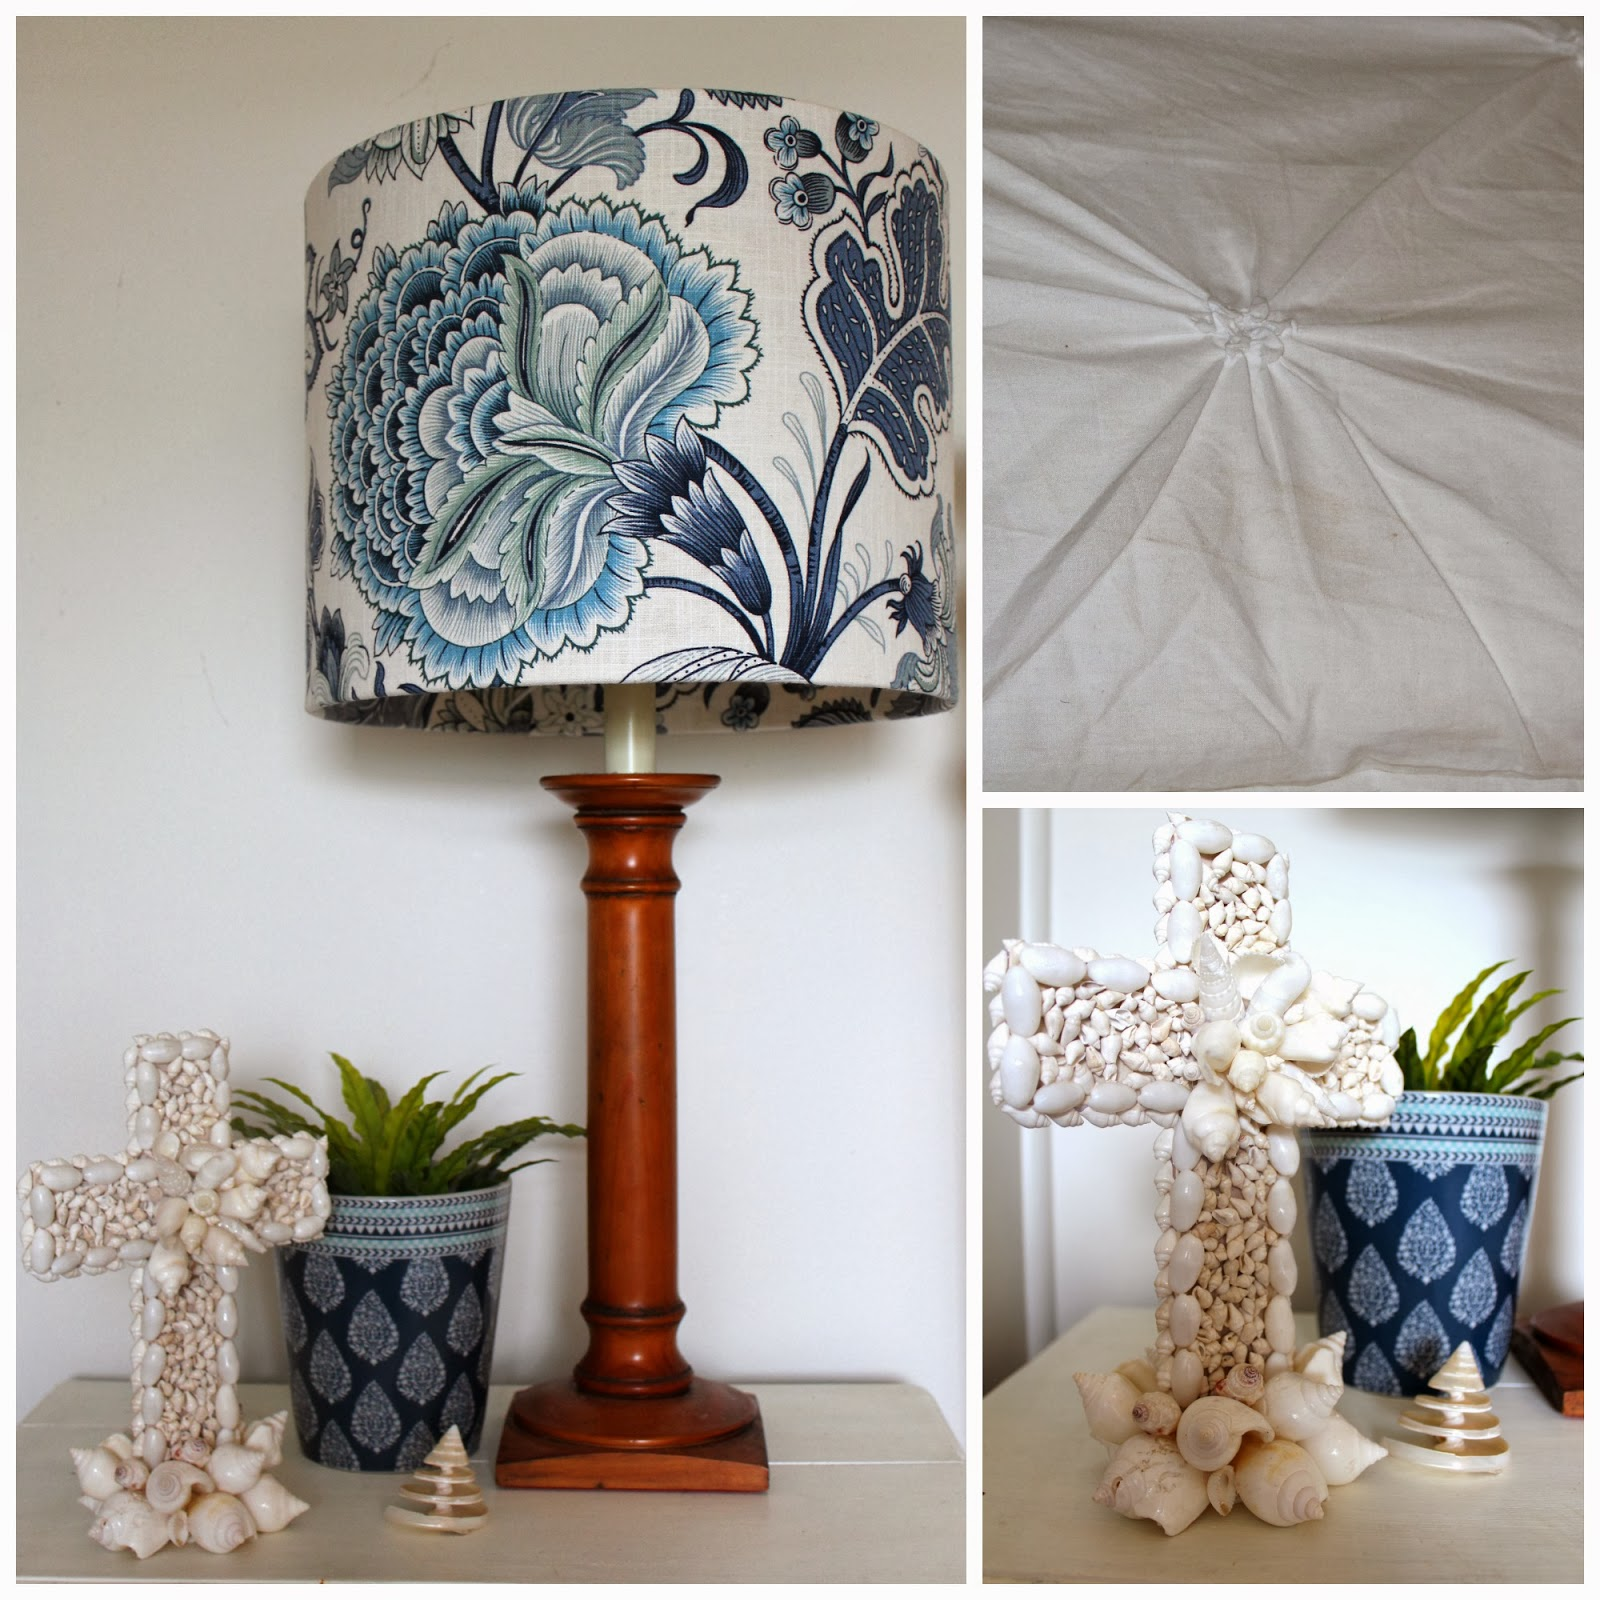 How to makeover a coastal bedroom in blue and white desire empire as for the accessories some time ago i covered an old lamp shade i already had and bought another lampshade the same size to cover aloadofball Gallery